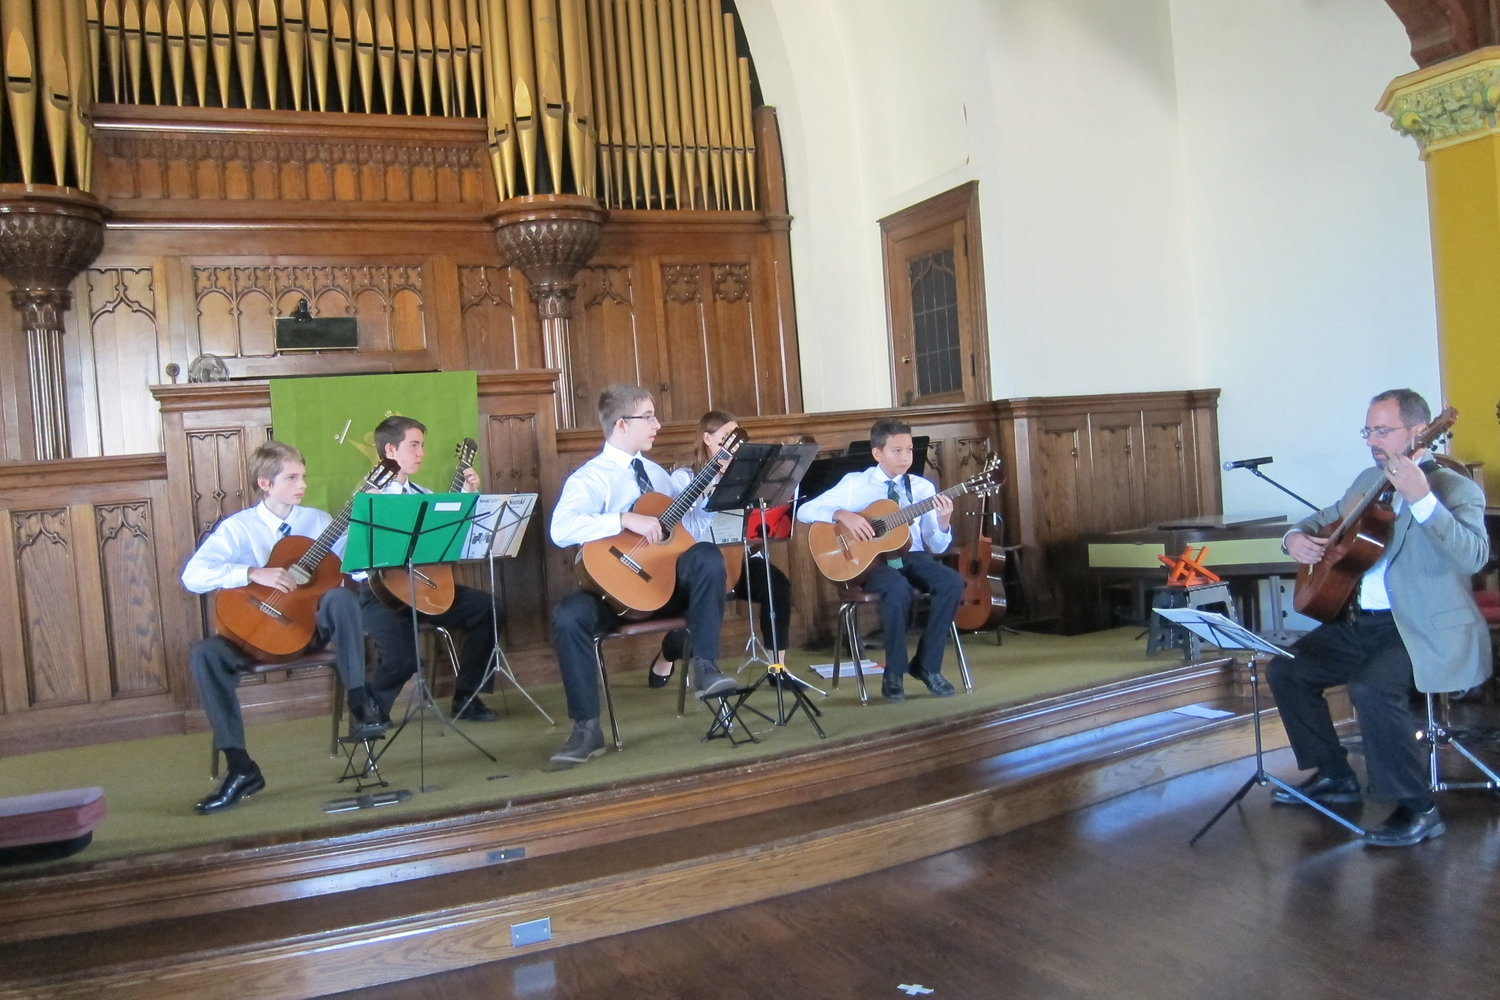 Guitarists perform together at the Ensemble Recital